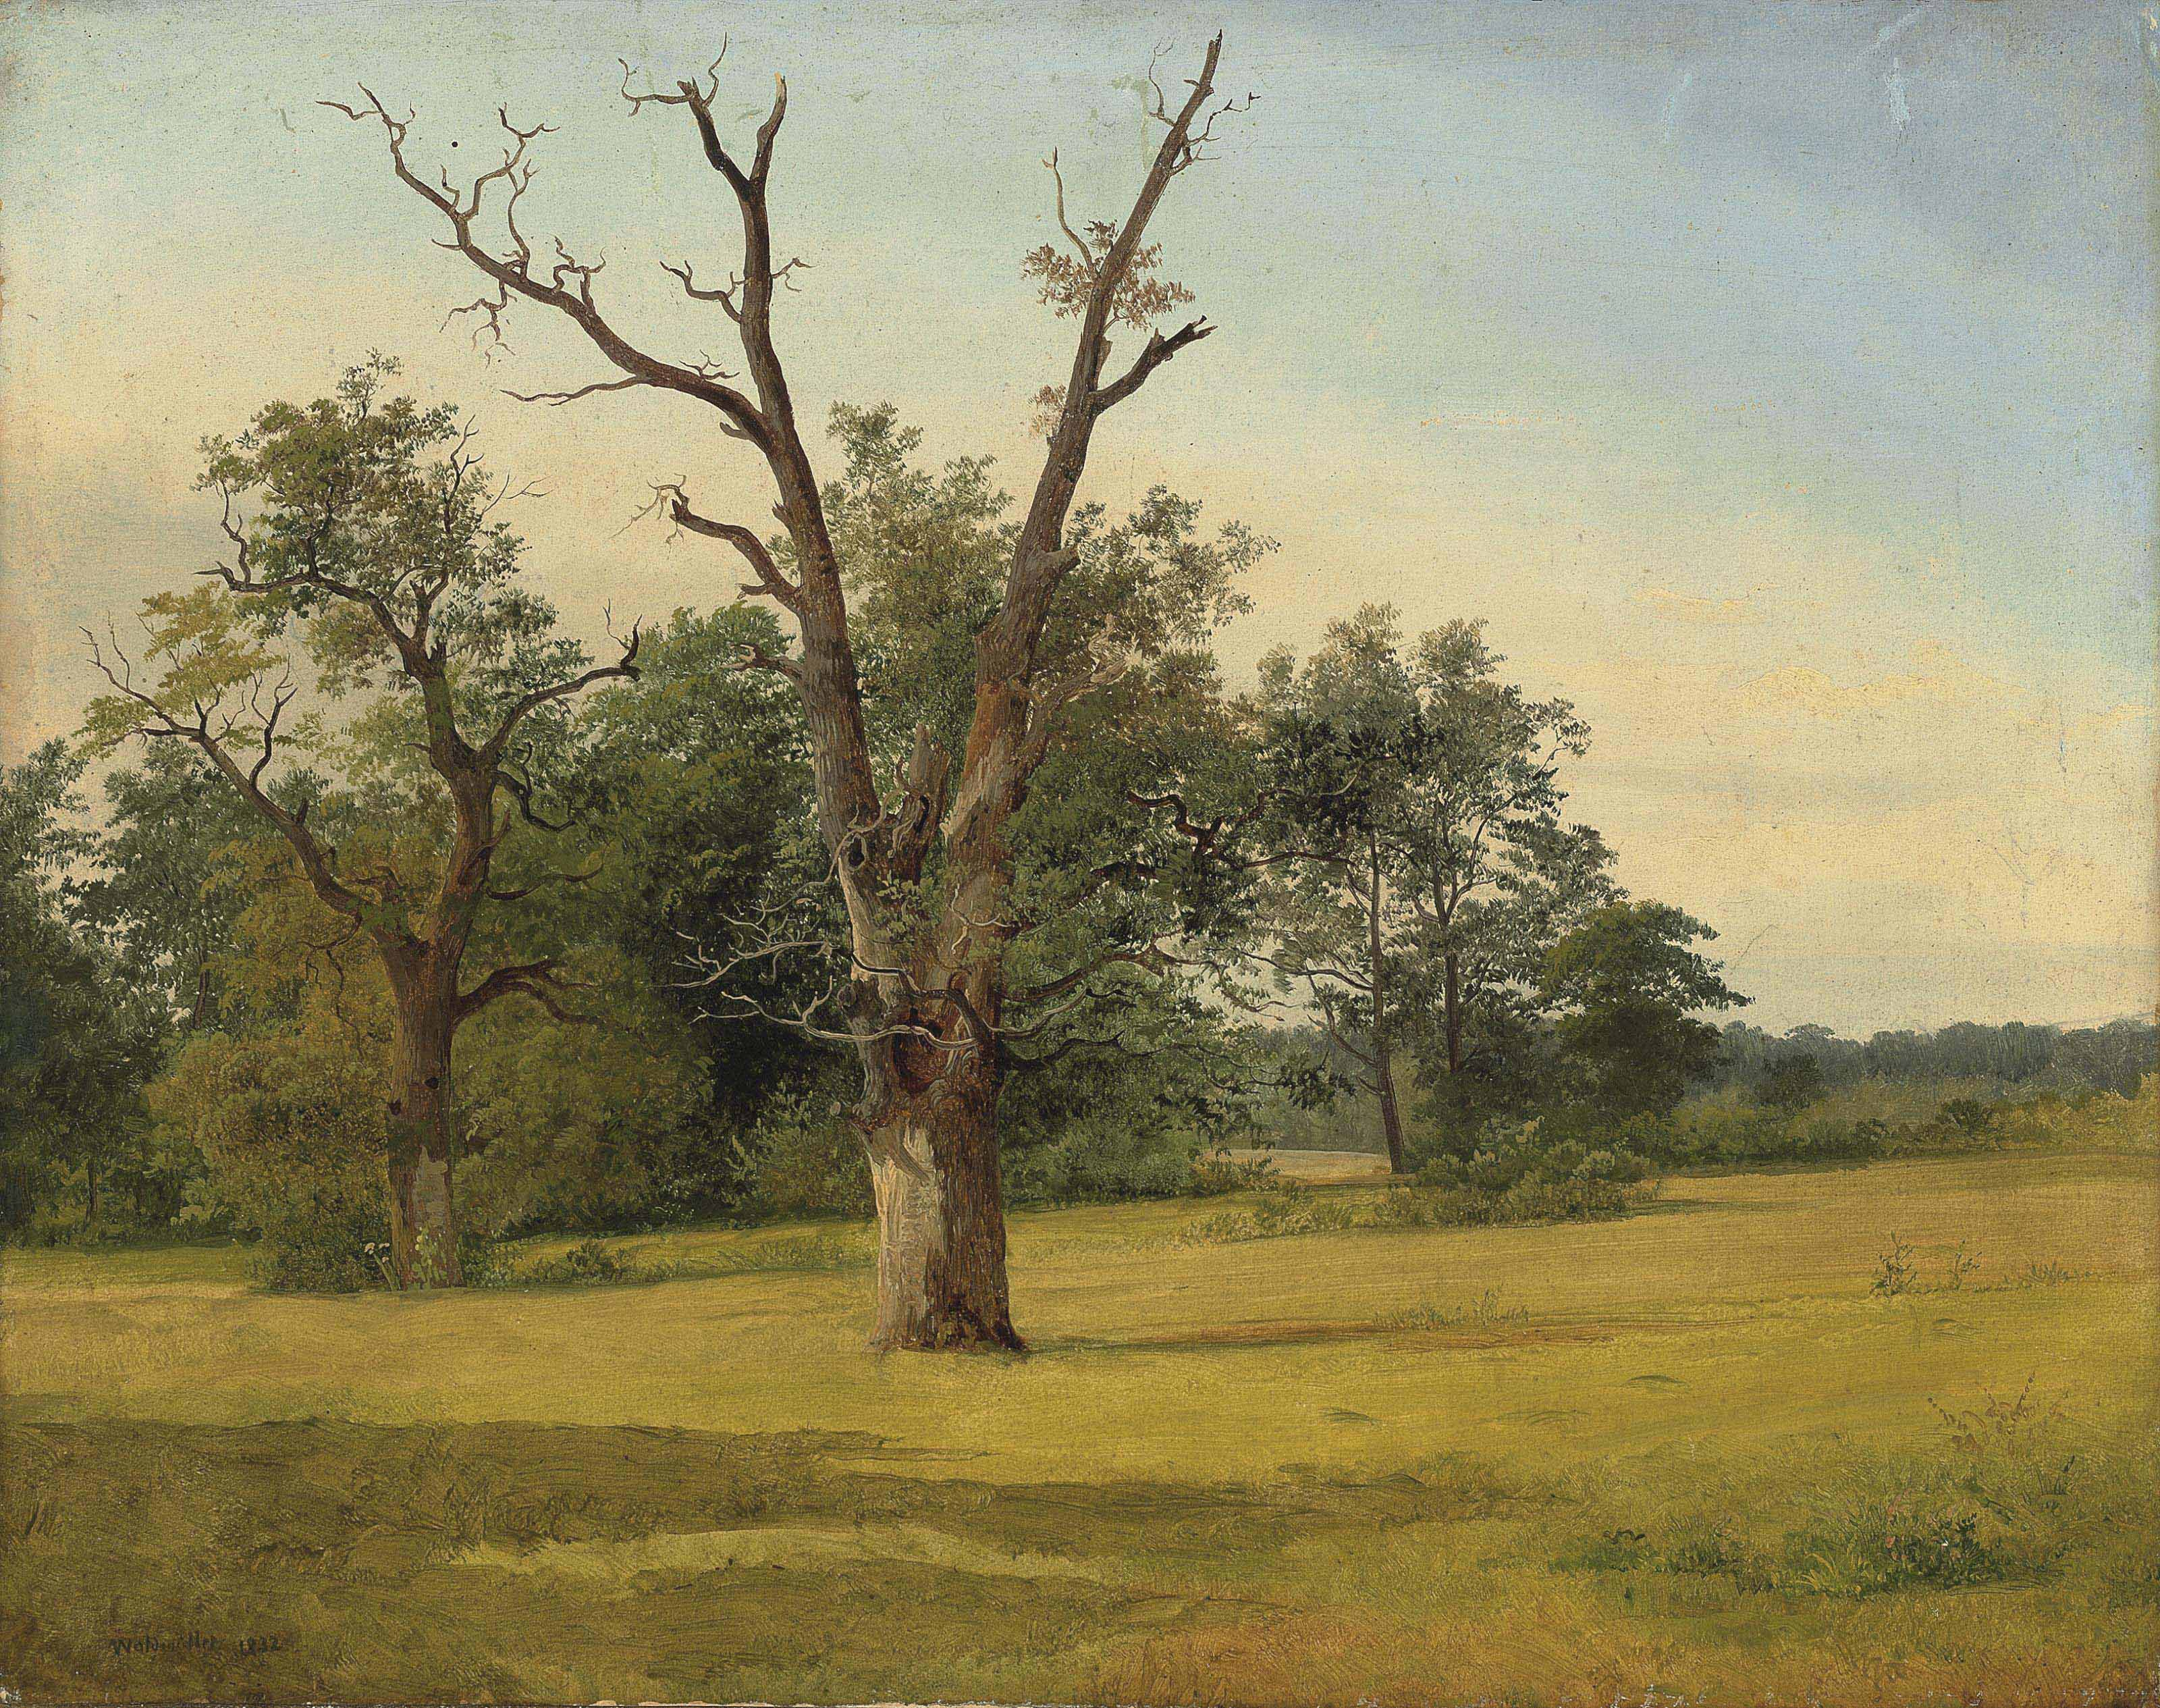 A landscape in the Prater, Vienna